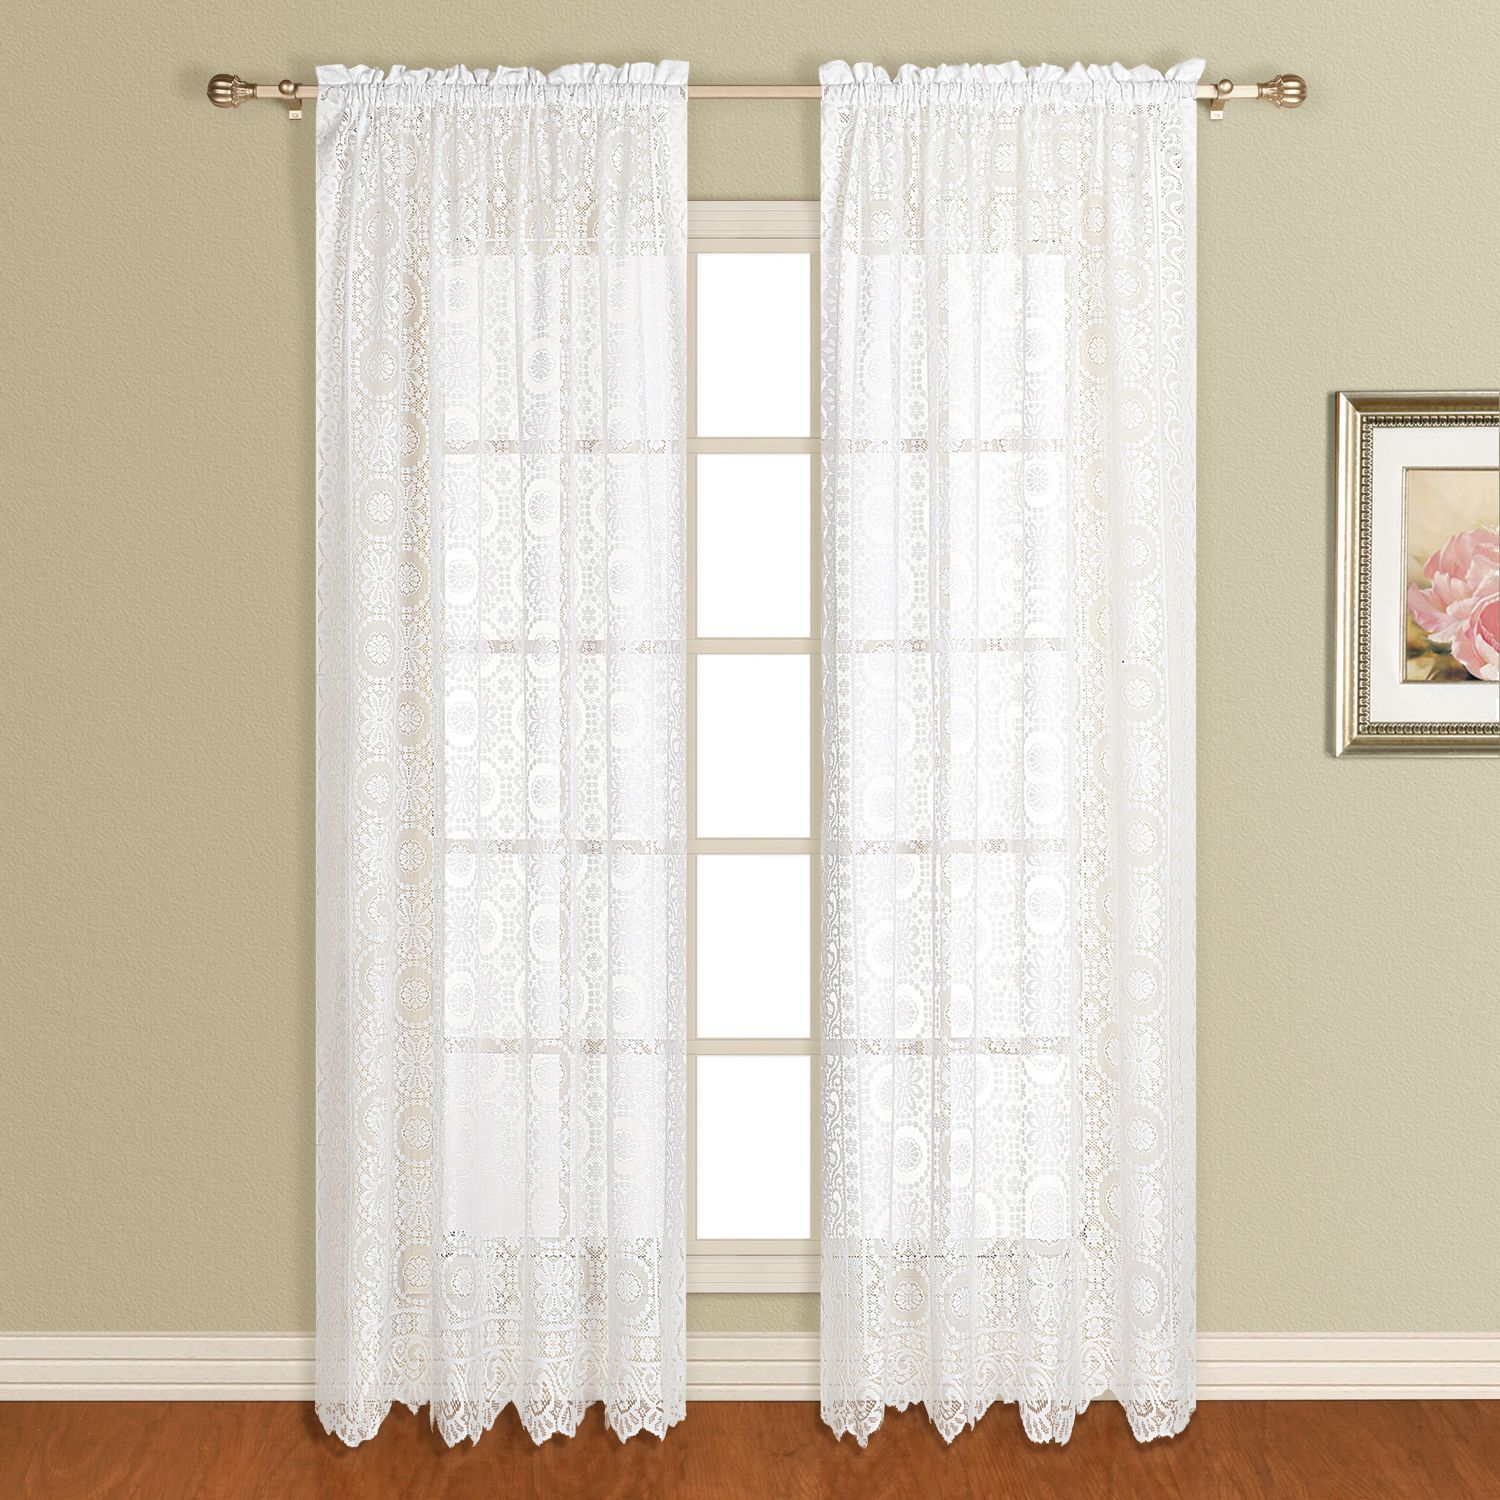 Zebra window coverings  united curtain company new rochele all over lace design